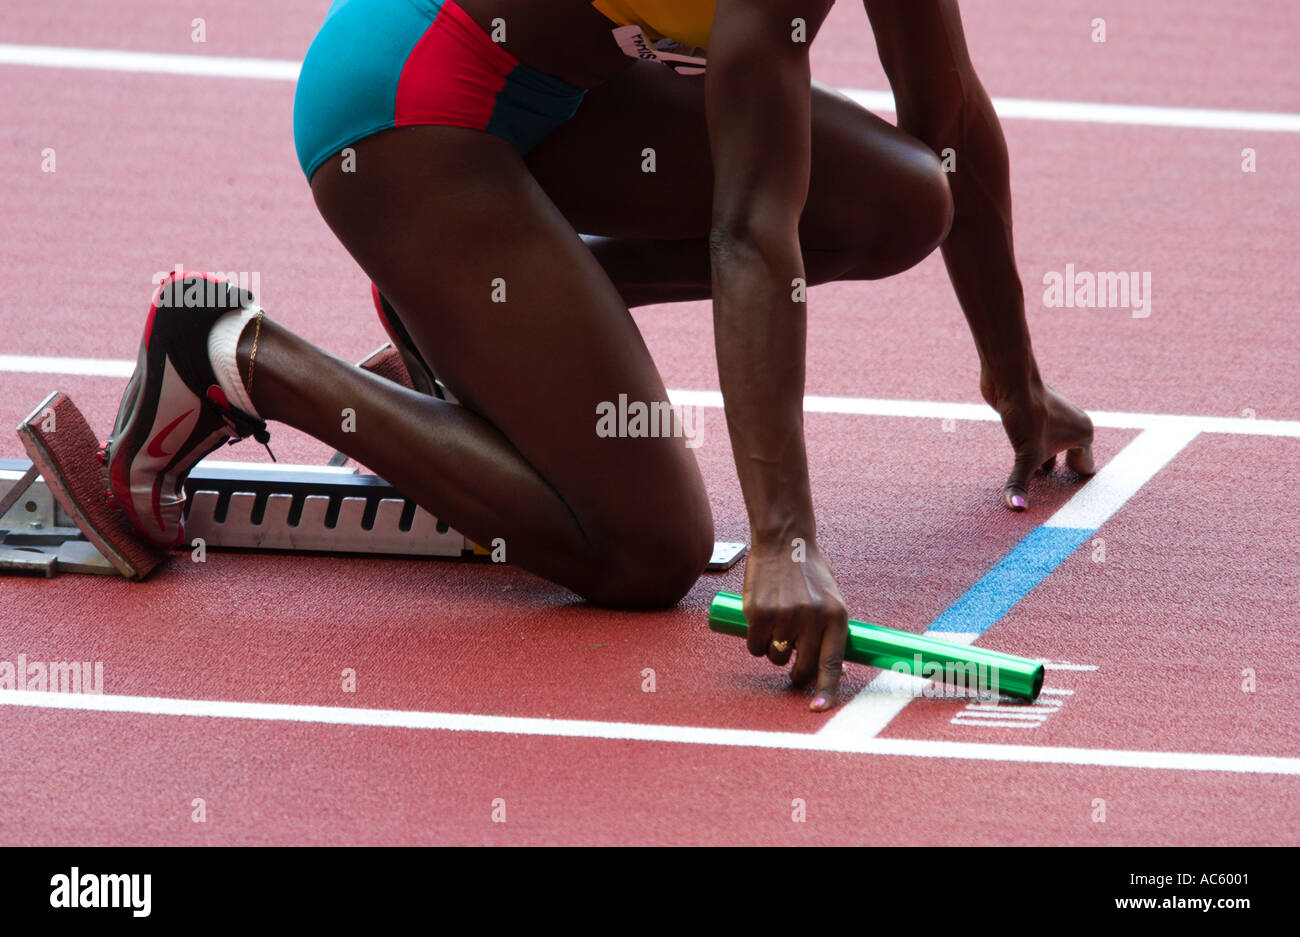 female competitior at a relay race lines upt her hands and baton with the starting line - Stock Image